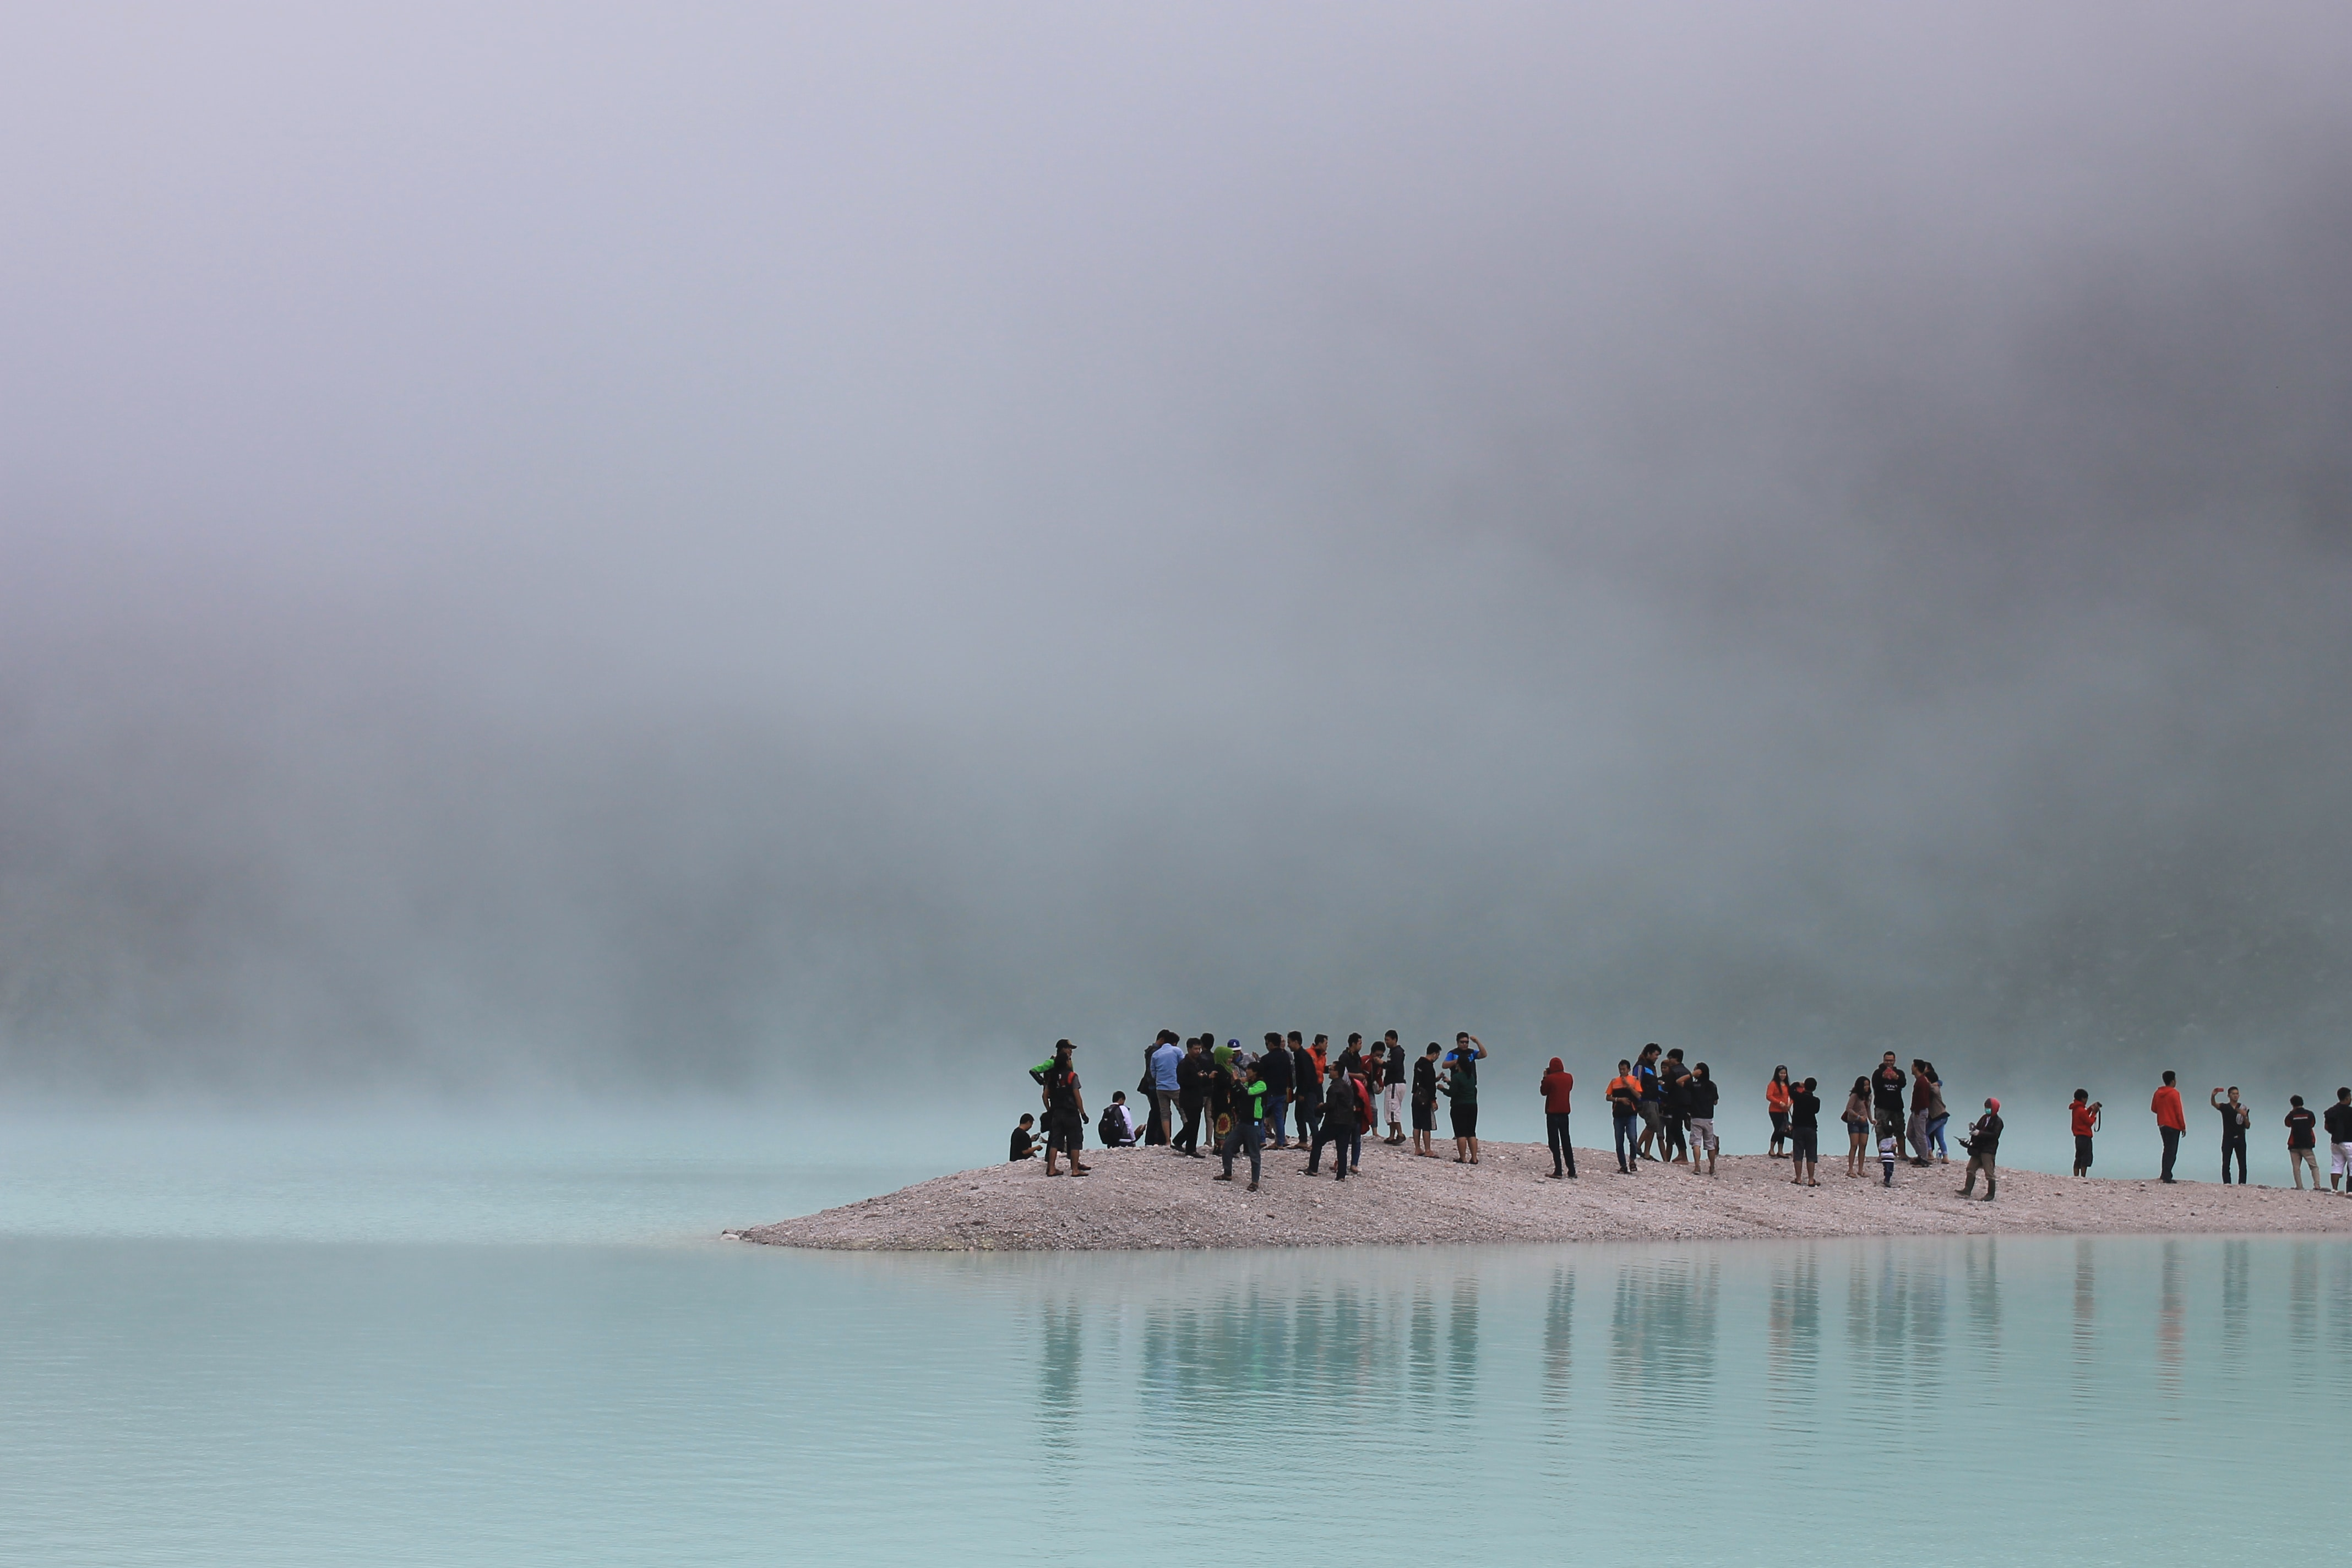 group of people standing on brown stand surrounded by body of water